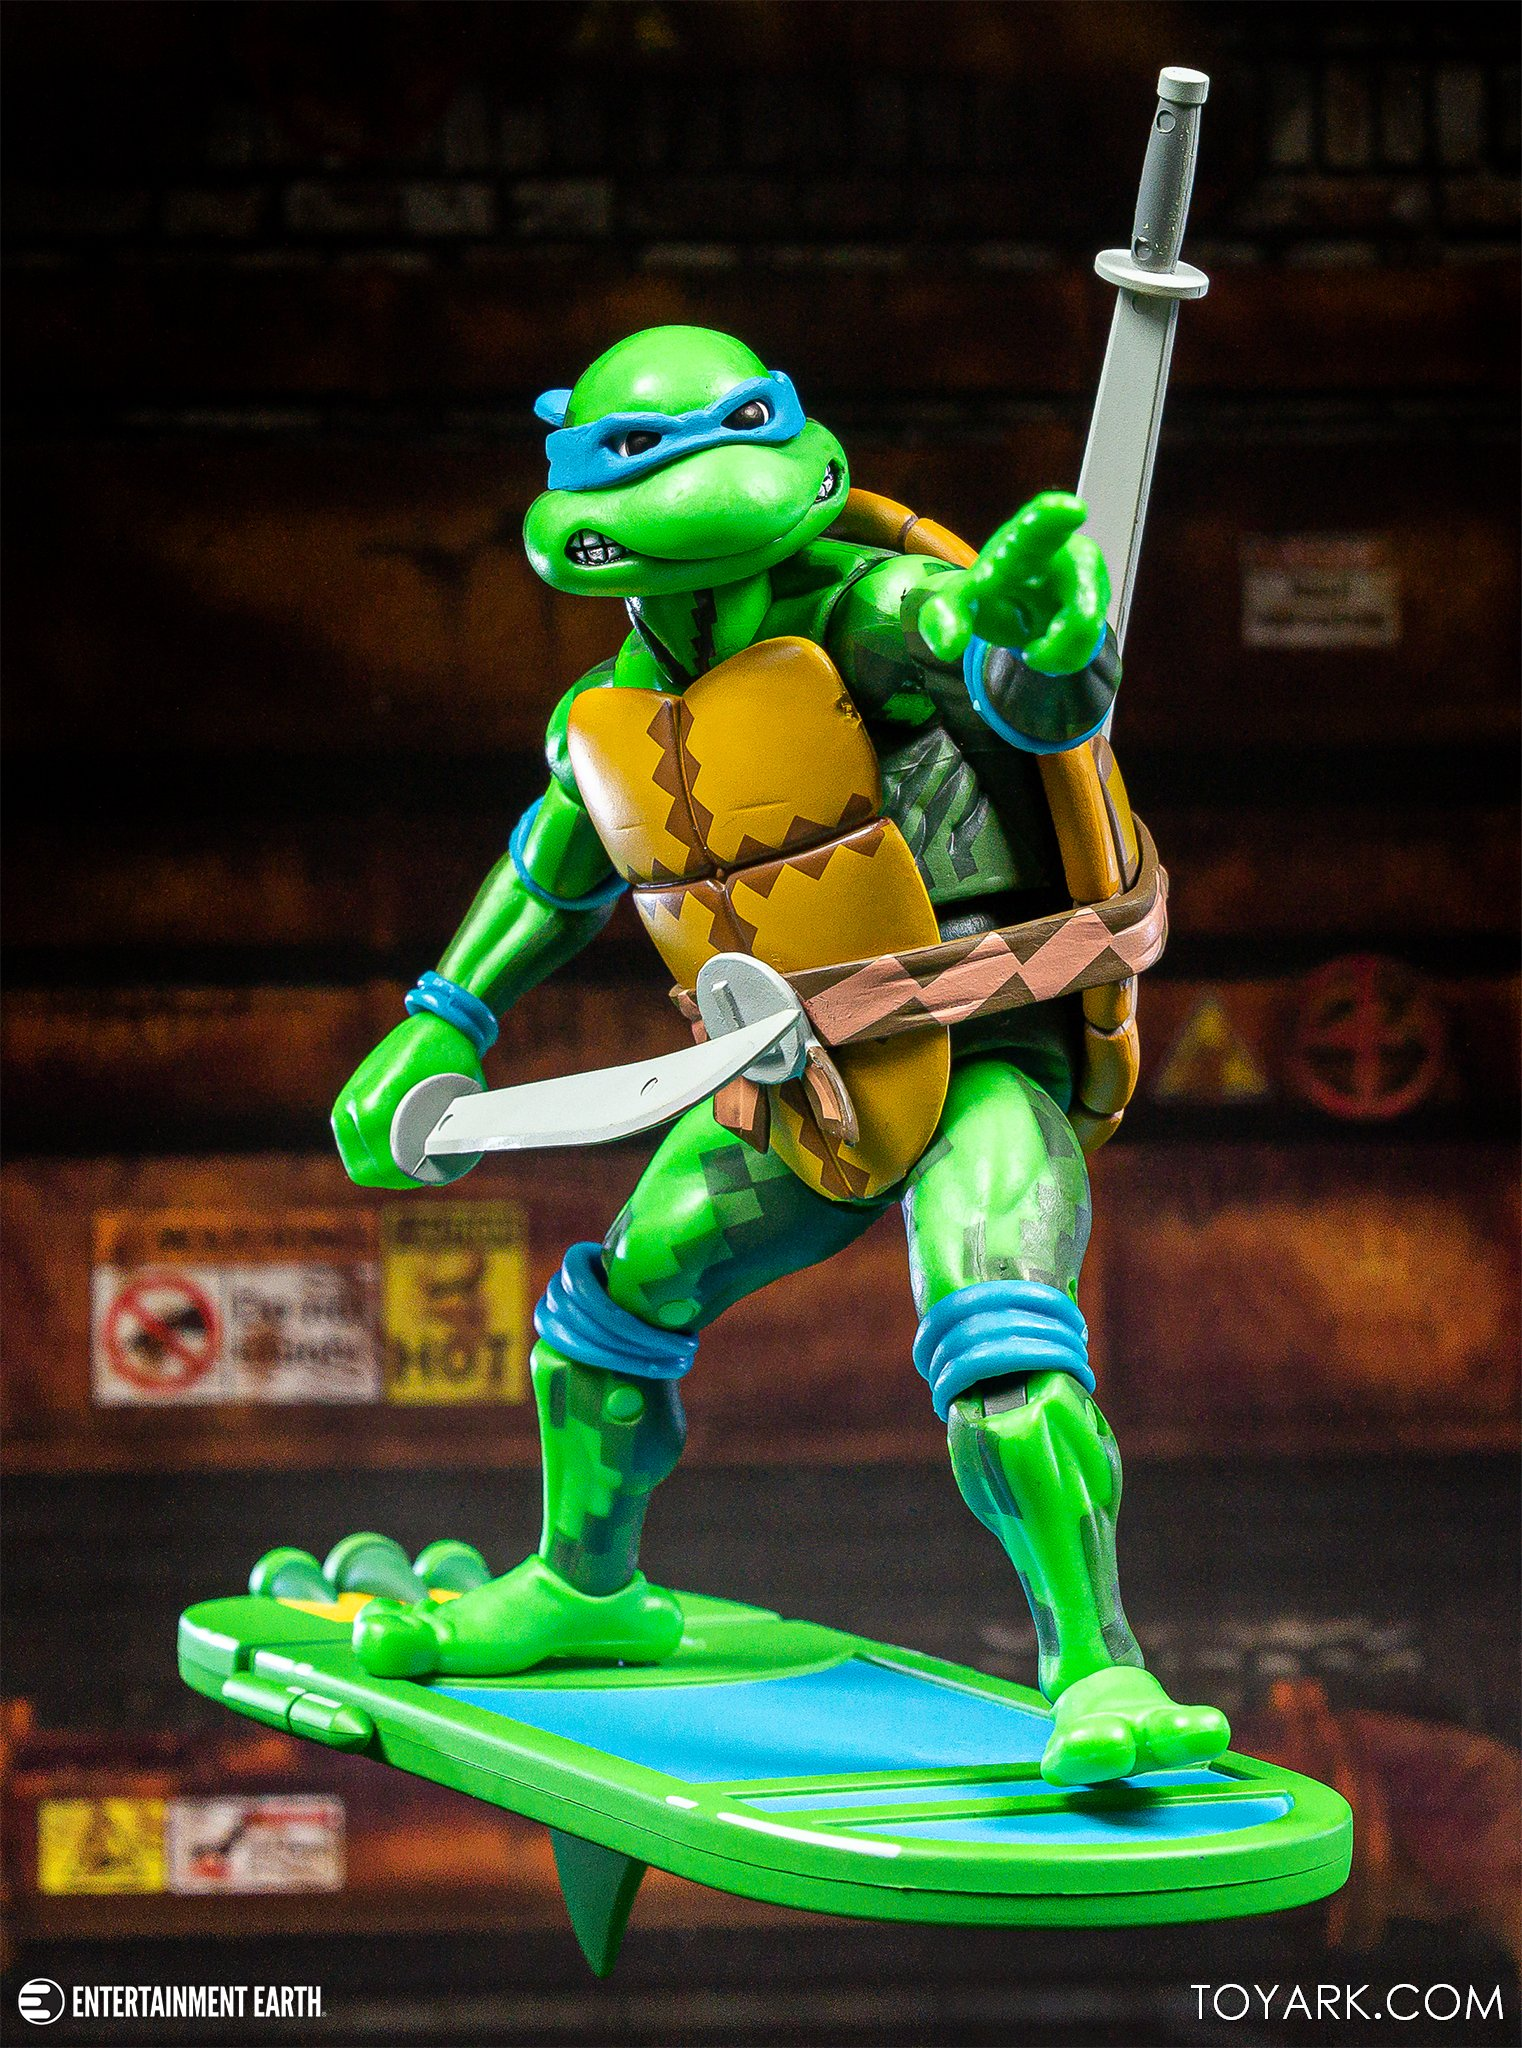 https://news.toyark.com/wp-content/uploads/sites/4/2020/06/NECA-TMNT-Turtles-In-Time-S1-069.jpg